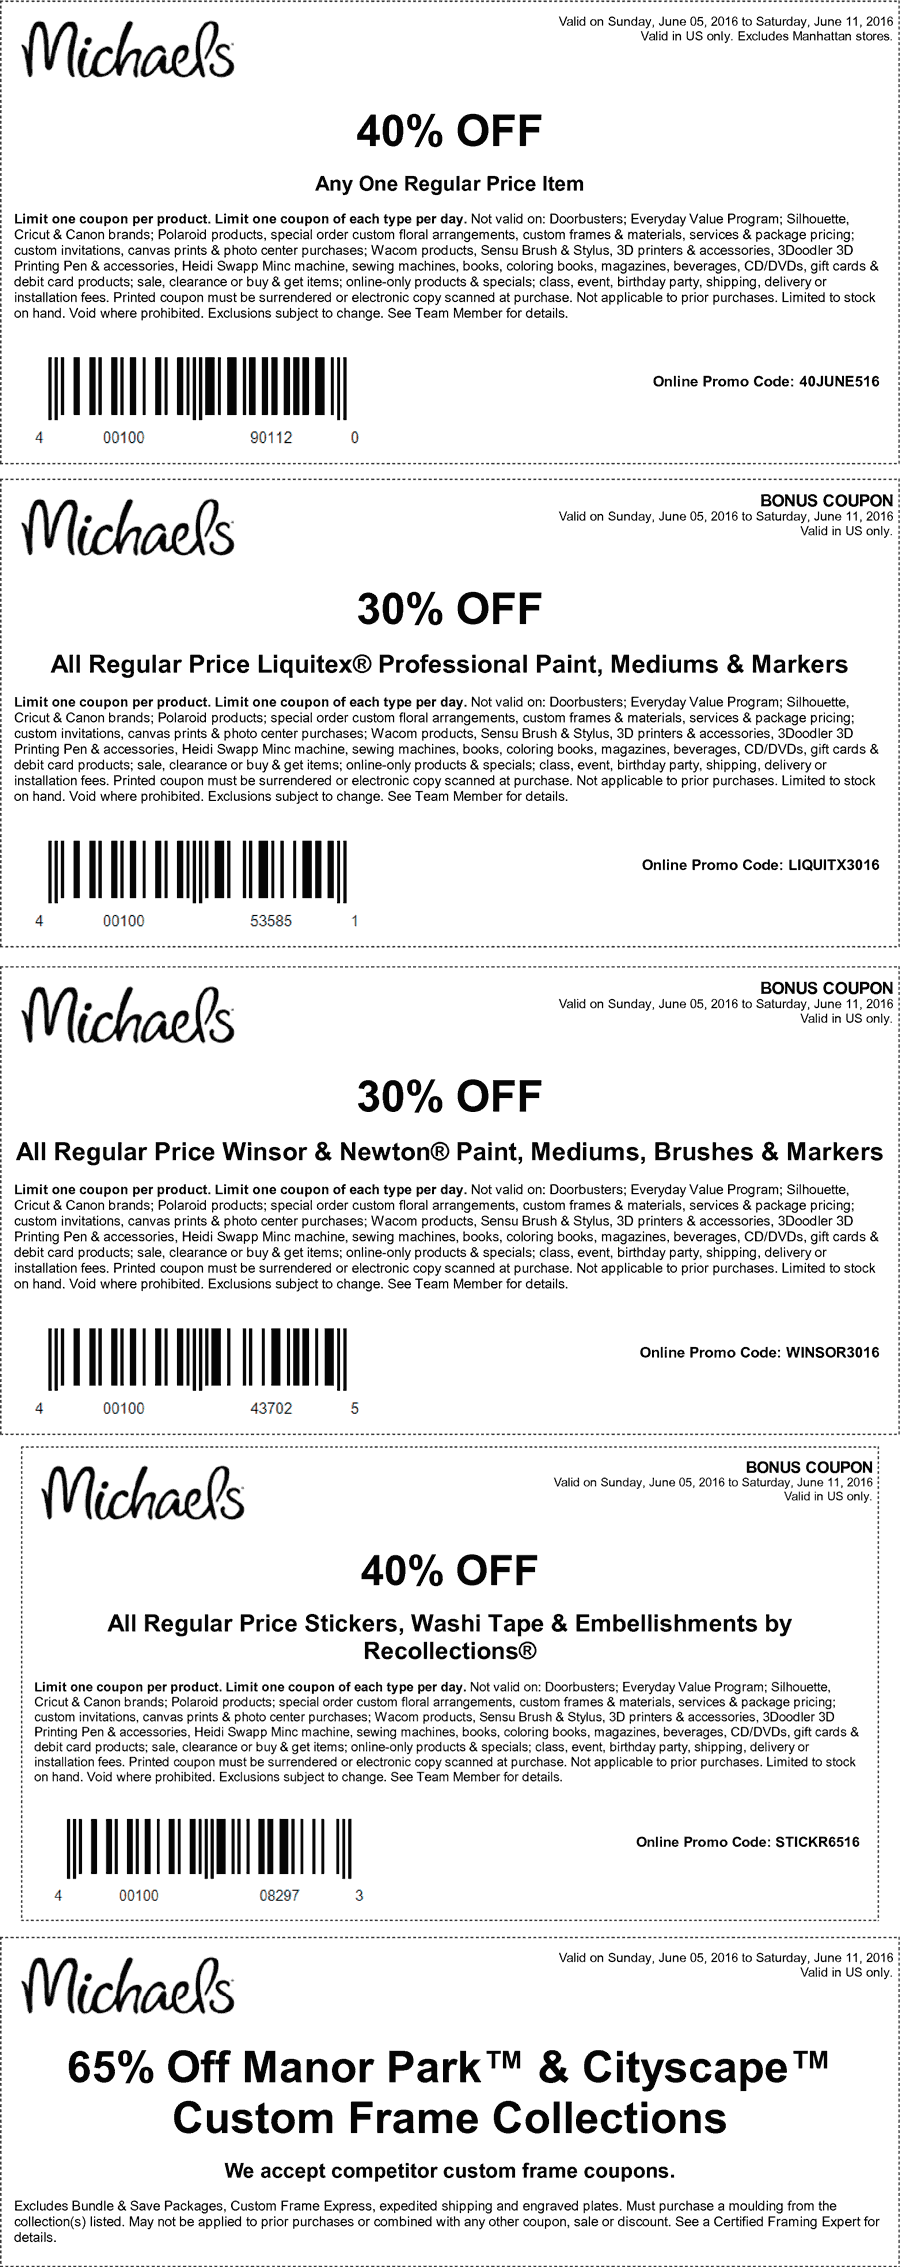 Michaels Coupon December 2016 40% off a single item & more at Michaels, or online via promo code 40JUNE516